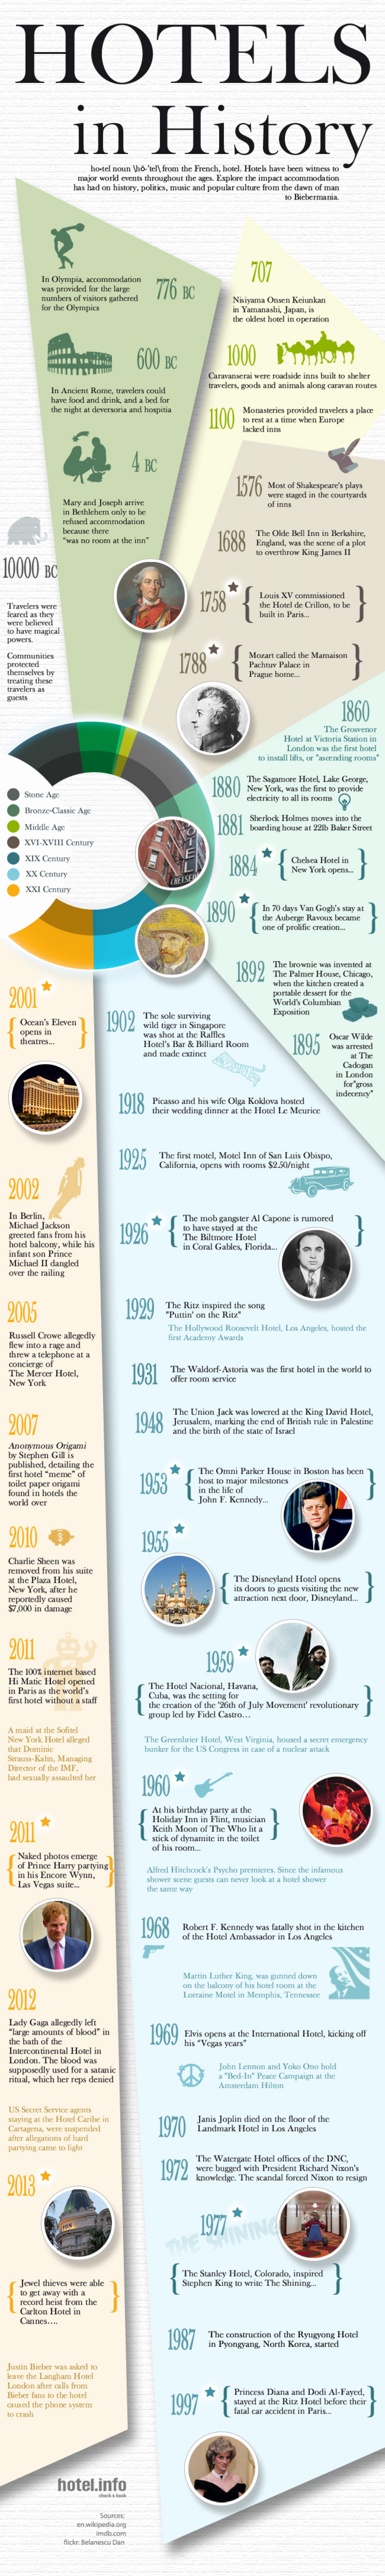 Hotels in History Infographic